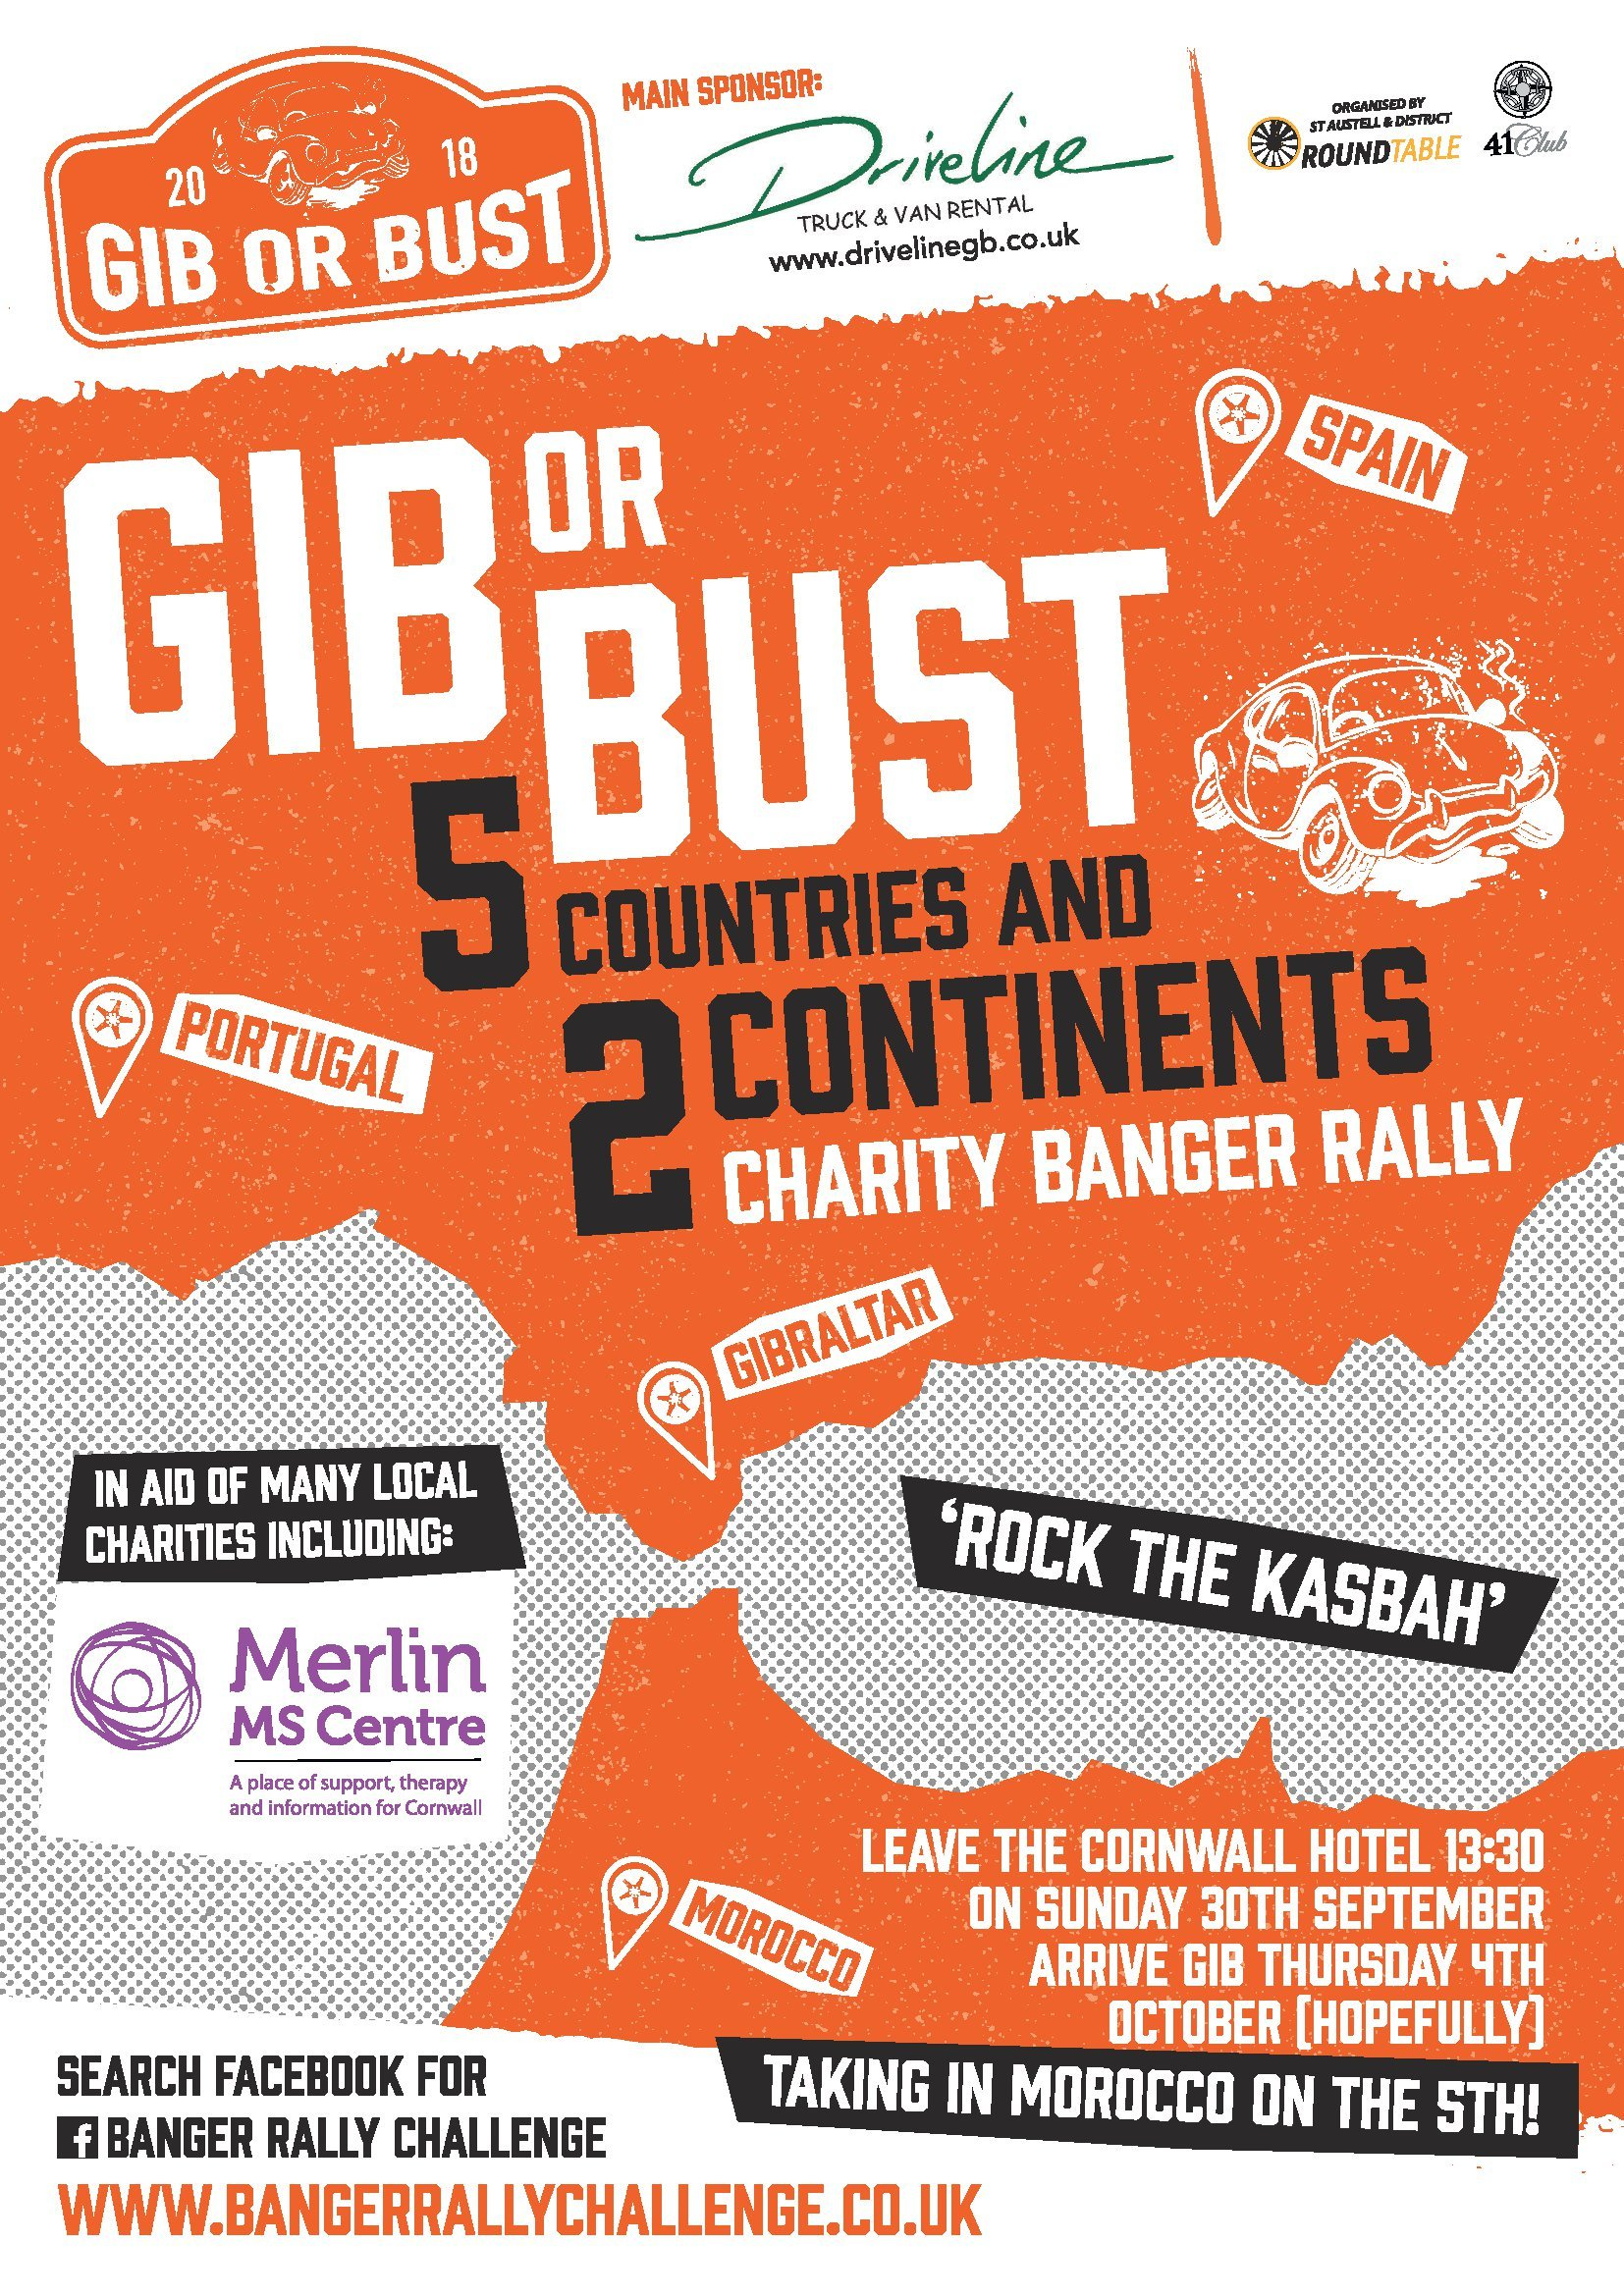 GIB OR BUST Poster Merlin MS Centre